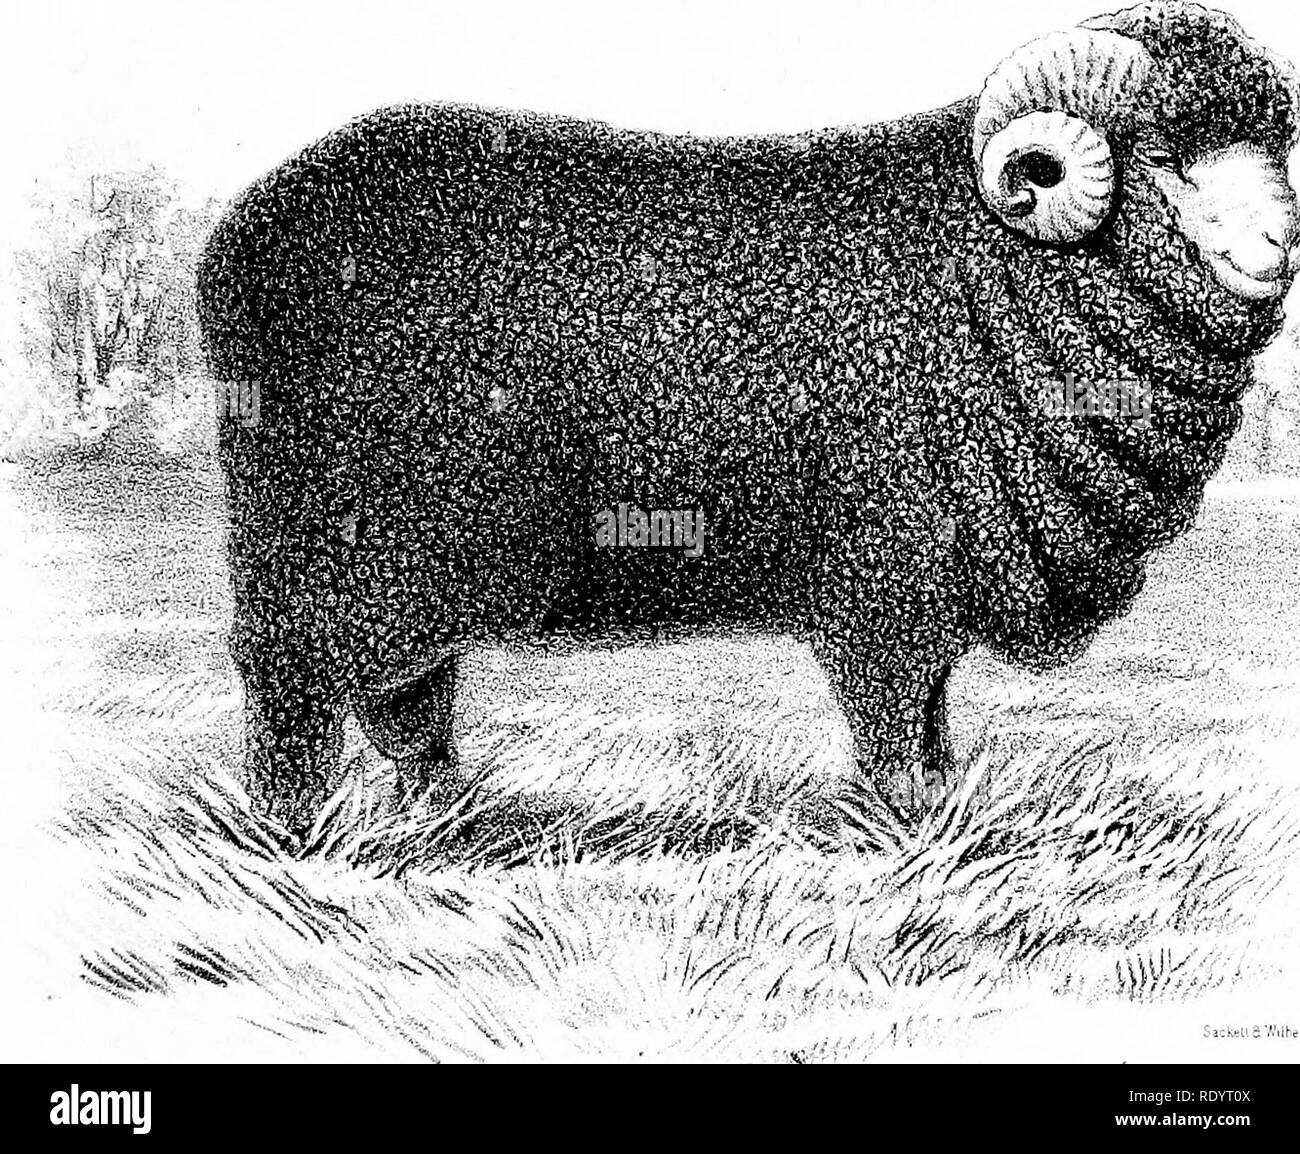 Merino Ram Black and White Stock Photos & Images - Alamy